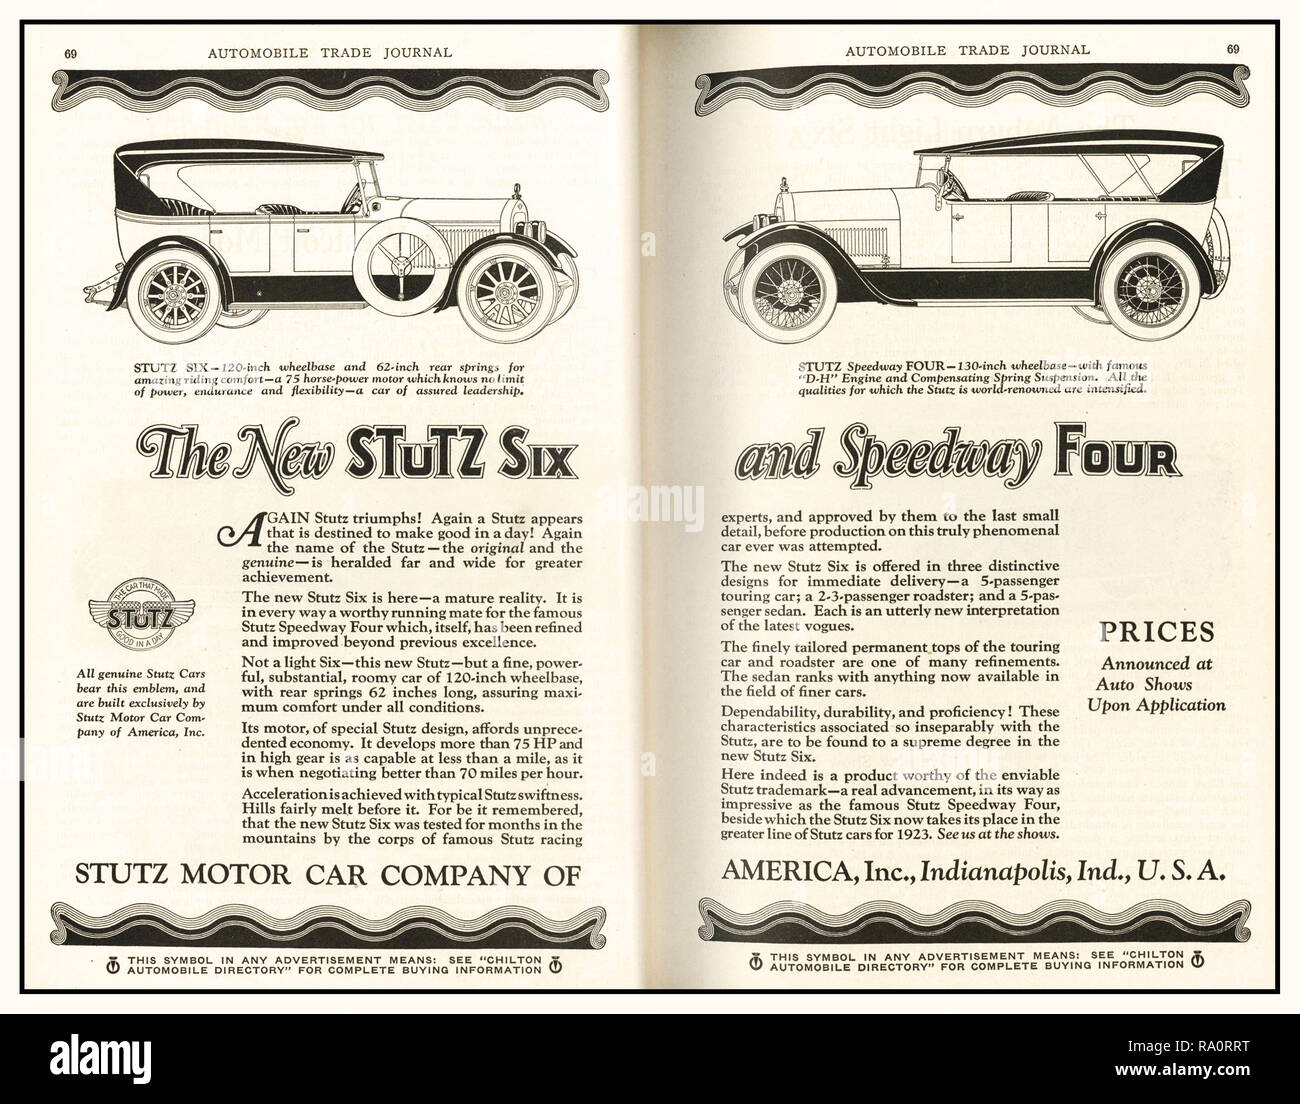 Archive Press advertisement for 1920's Stutz American Automobiles 'The New Stutz Six and Speedway Four' Stutz built some of the most mechanically advanced cars of the classic era. Advertised as 'The Car That Made Good in a Day' referring to their first showing at the 1911 Indianapolis 500; Stutz was an incredibly powerful, fast and sleek car on the track or on the road. - Stock Image